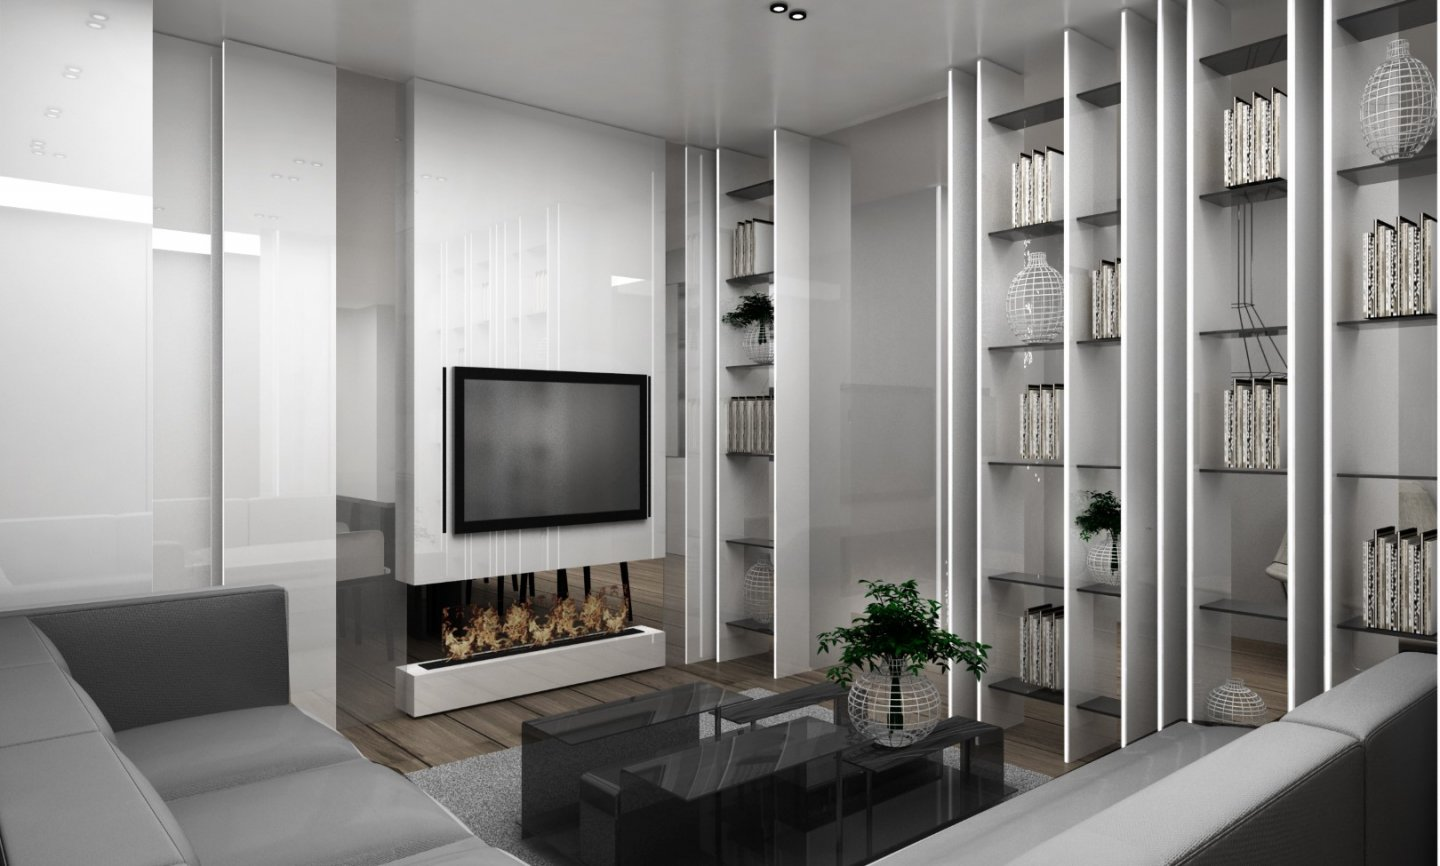 A.A Residence - project overview image